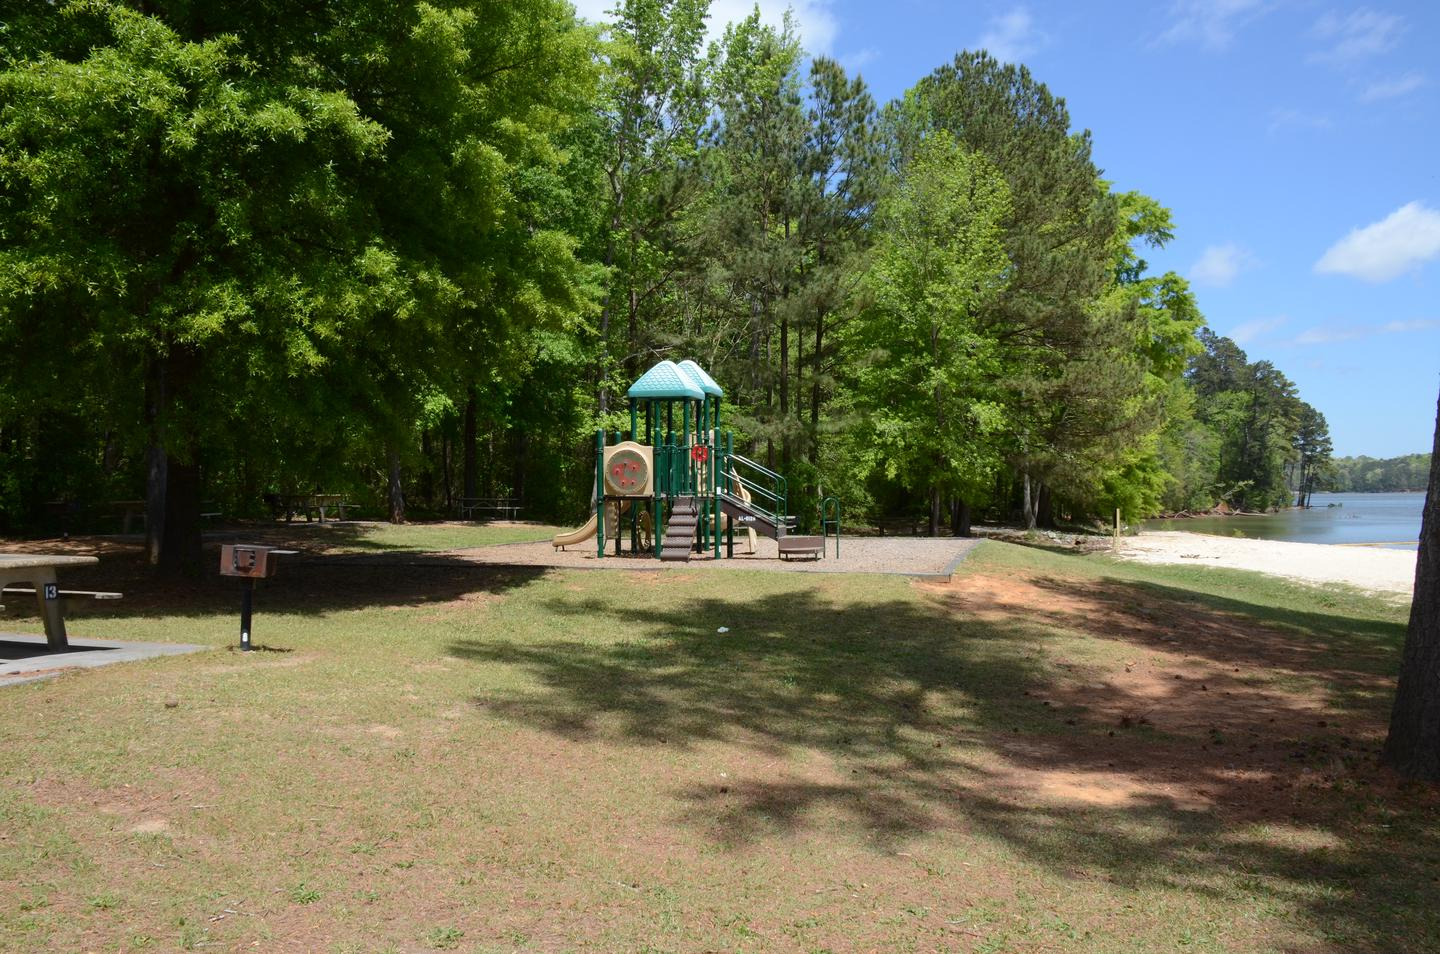 Sweetwater Day Use Playground